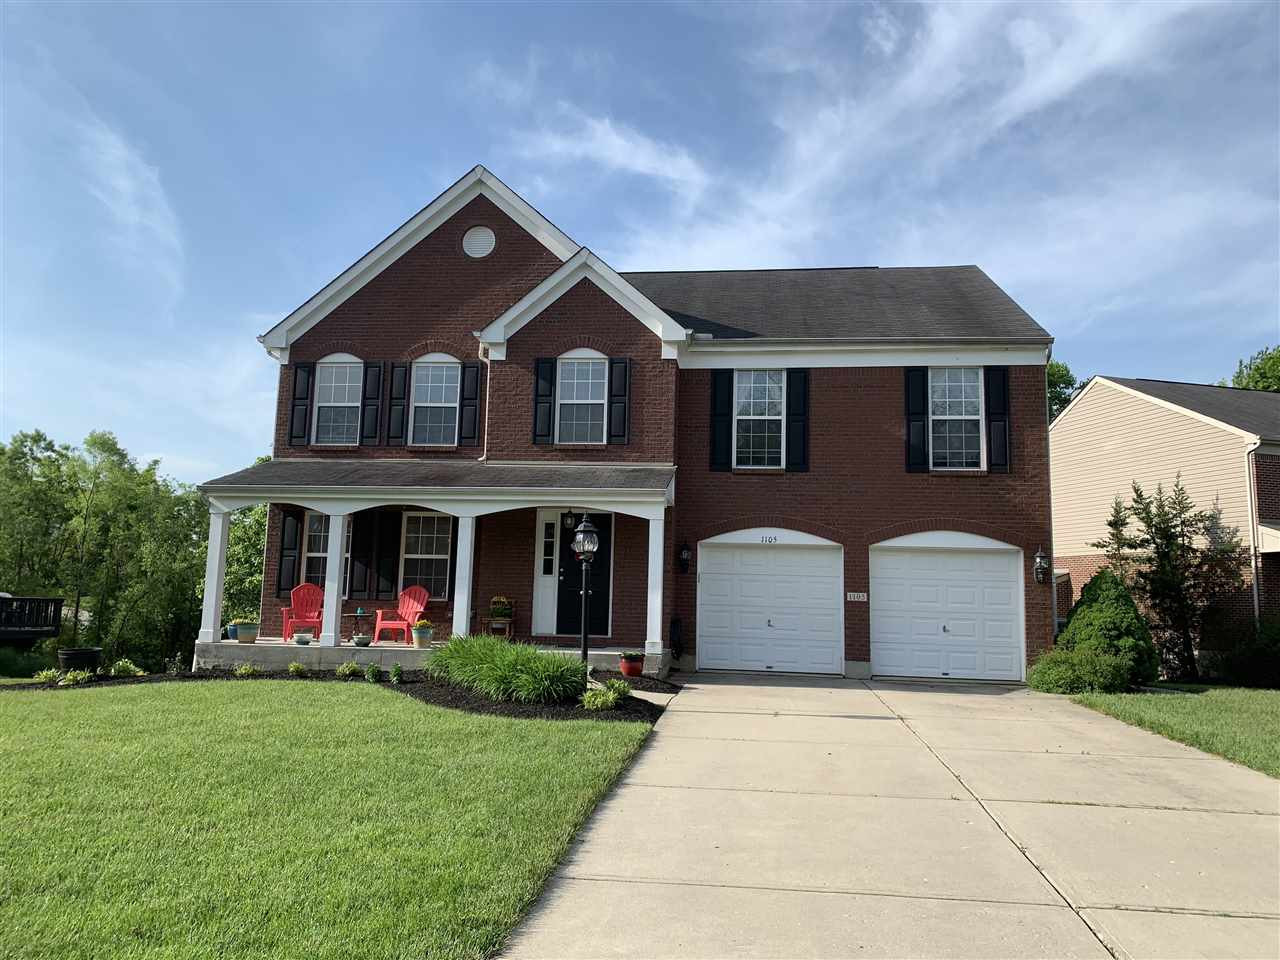 Photo 2 for 1105 Avon Ct Union, KY 41091